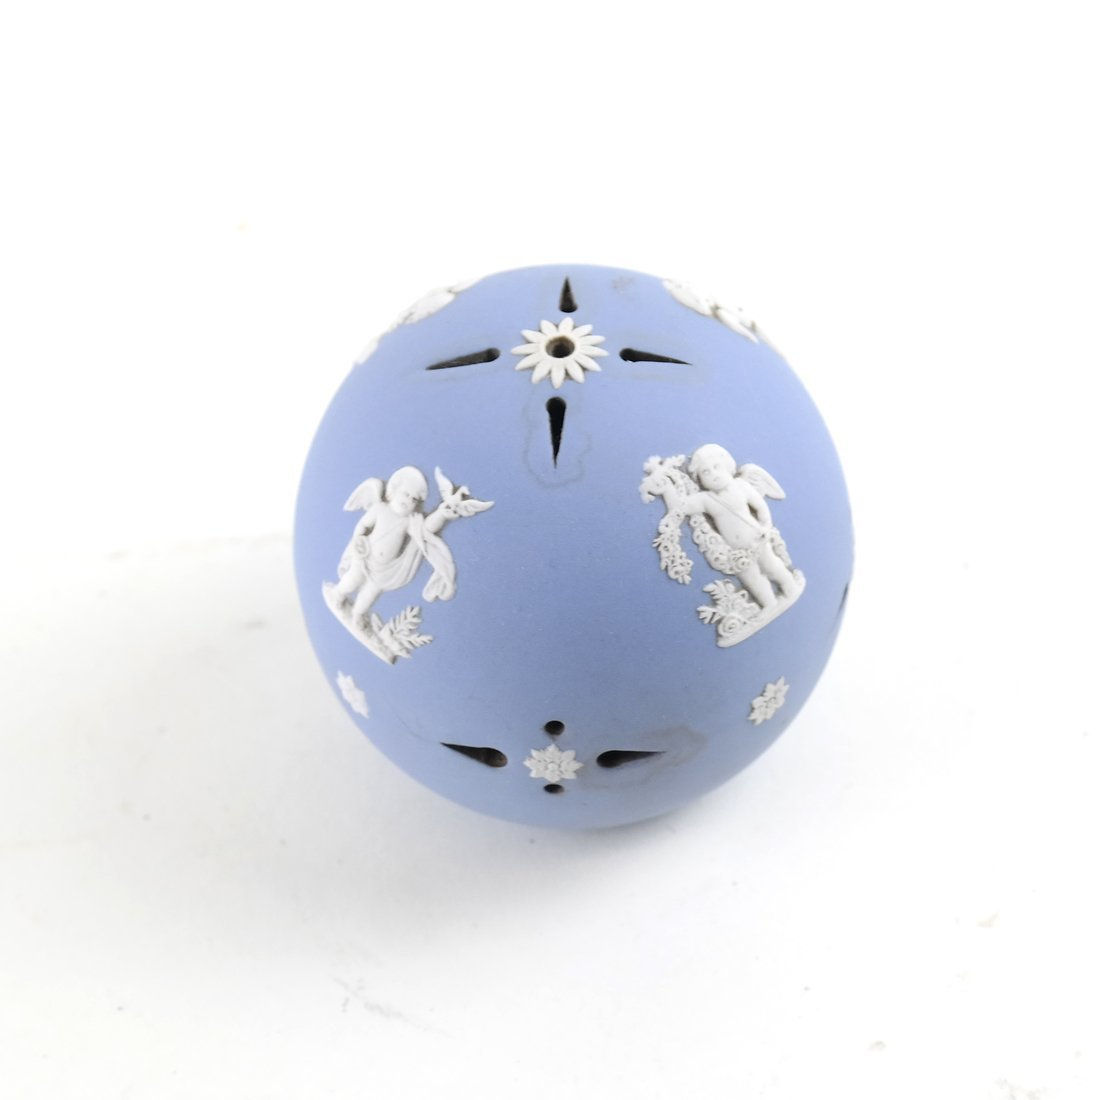 8 Asst. Blue and White Decorated Objects - 7